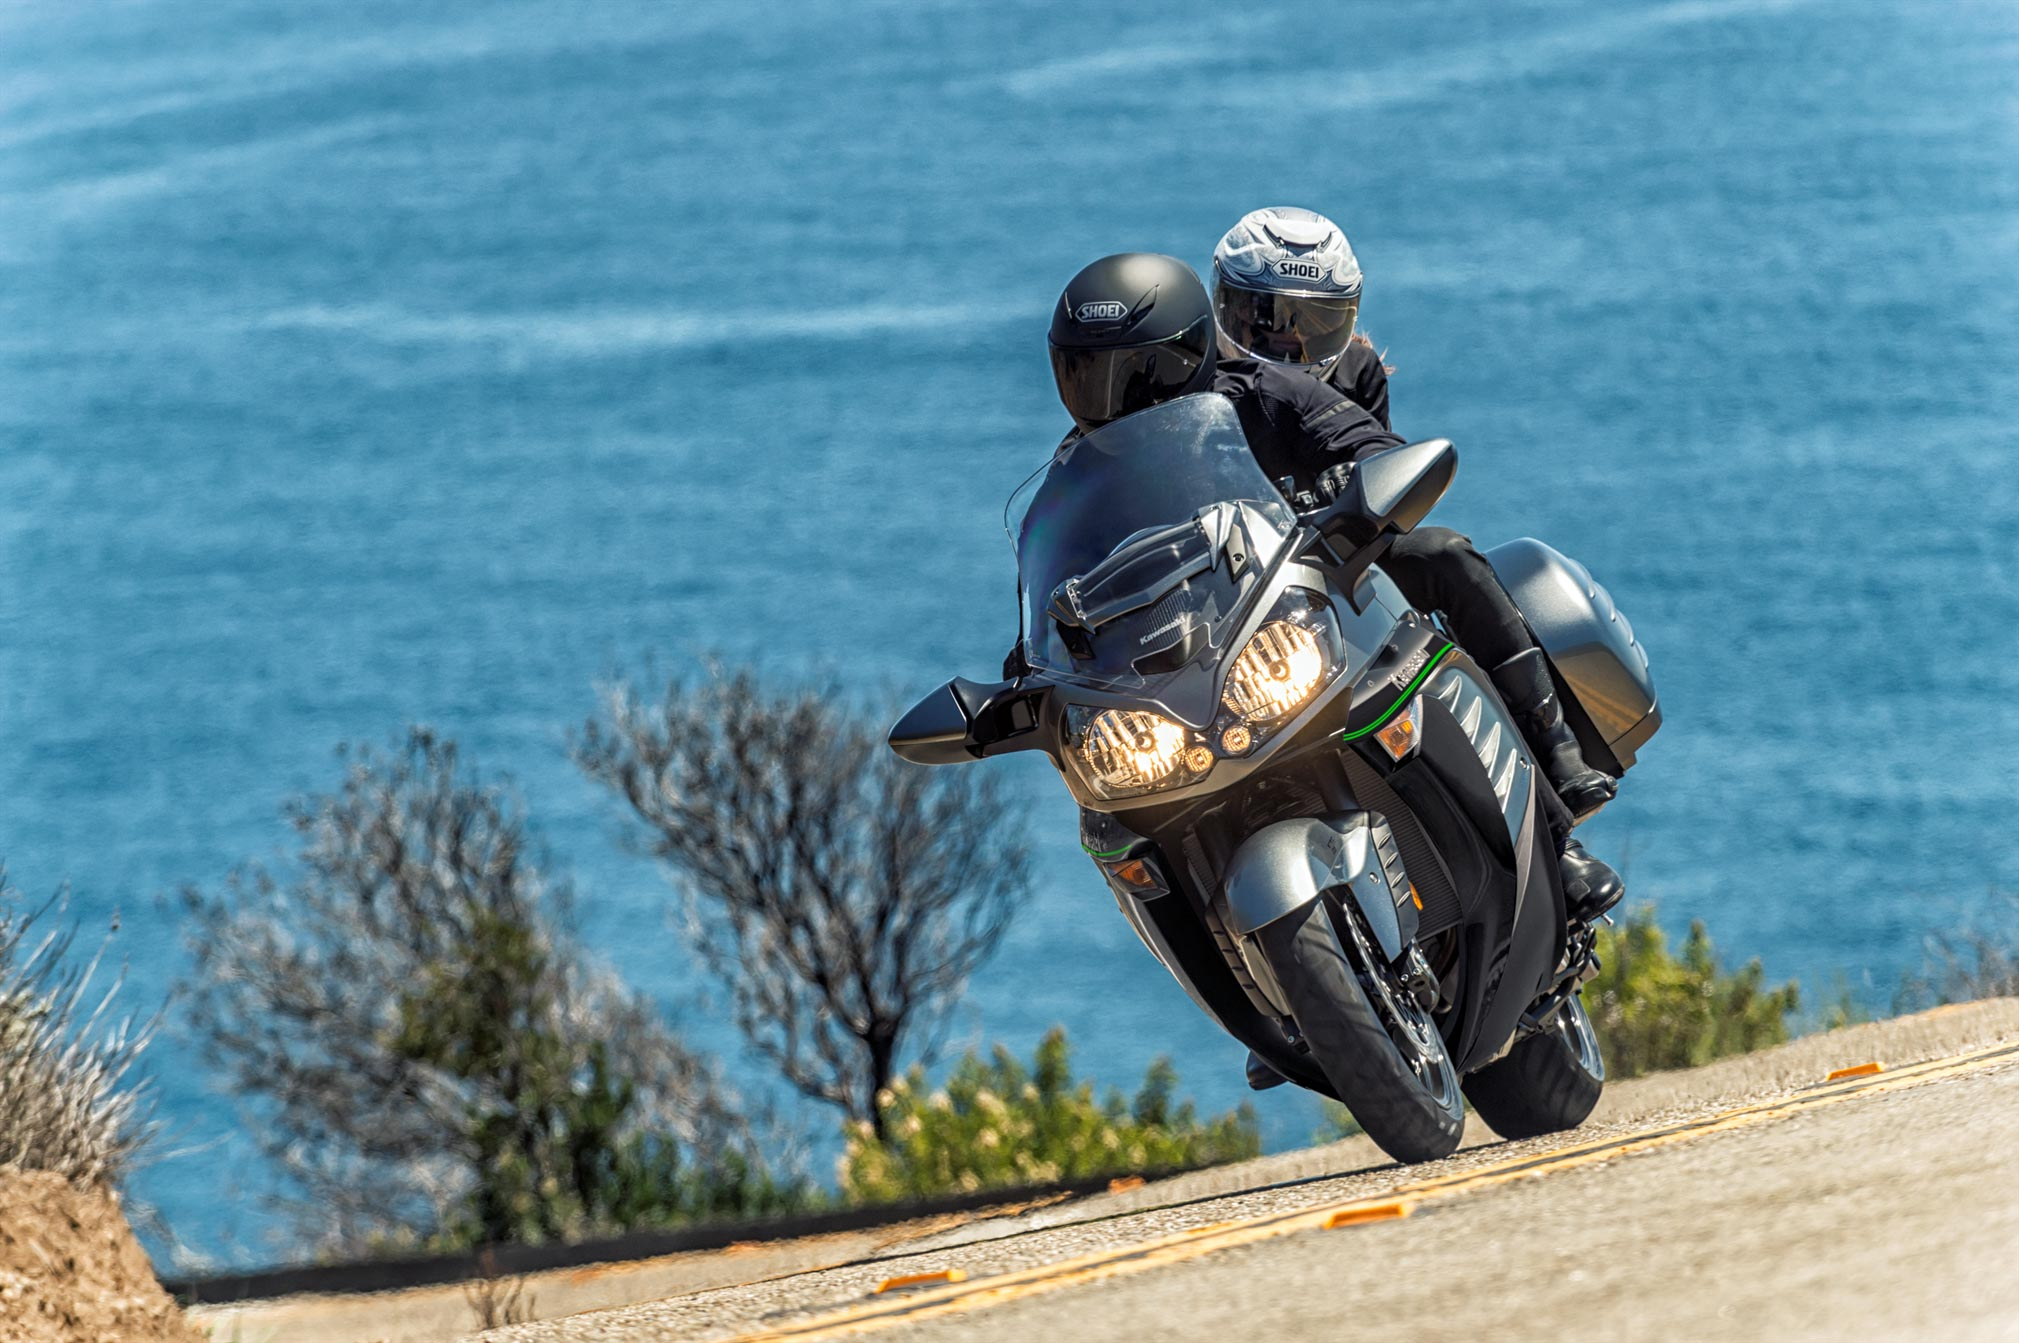 2019 Kawasaki Concours 14 ABS Guide • Total Motorcycle